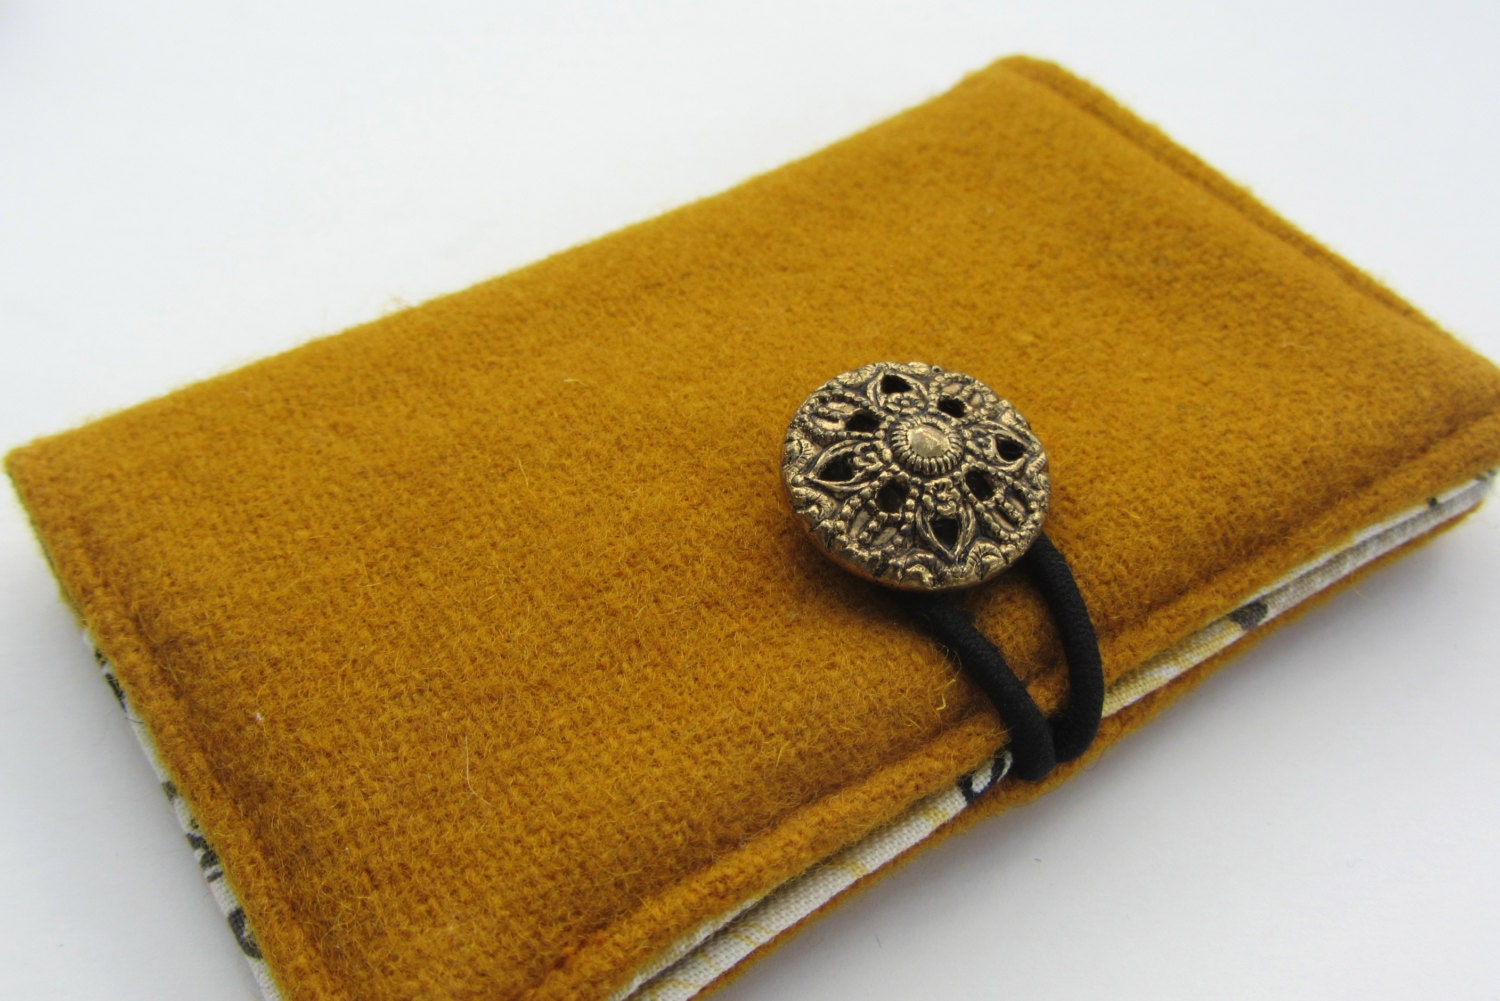 Upcycled Wool Bifold w/ Vintage Button Closure and Cotton Print Lining - Gold (BF-27) - STRUCTUREbags